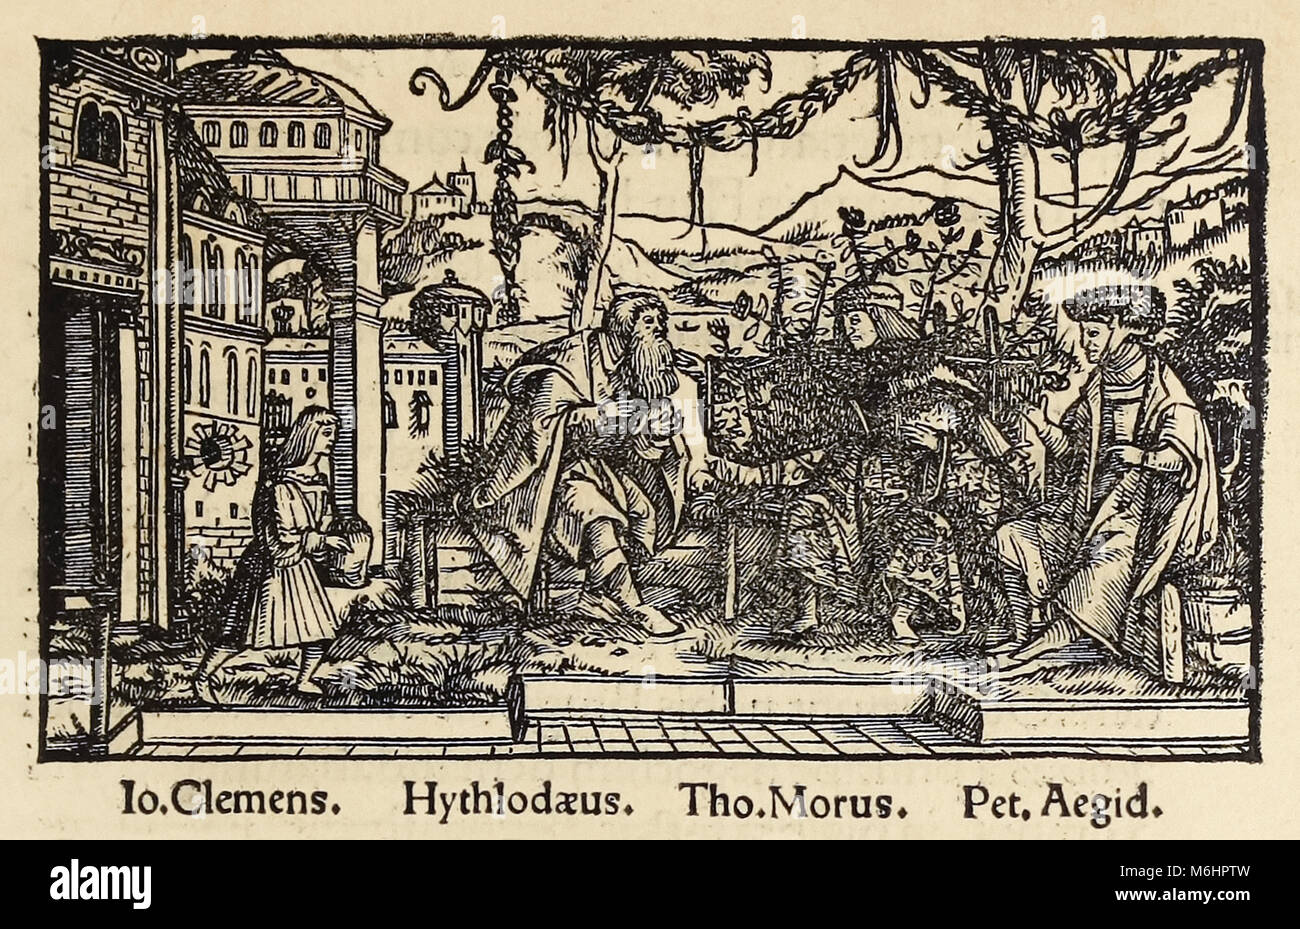 Woodcut from 1518 third edition of 'Utopia' by Sir Thomas More (1478–1535) published in Basel showing the author - Stock Image